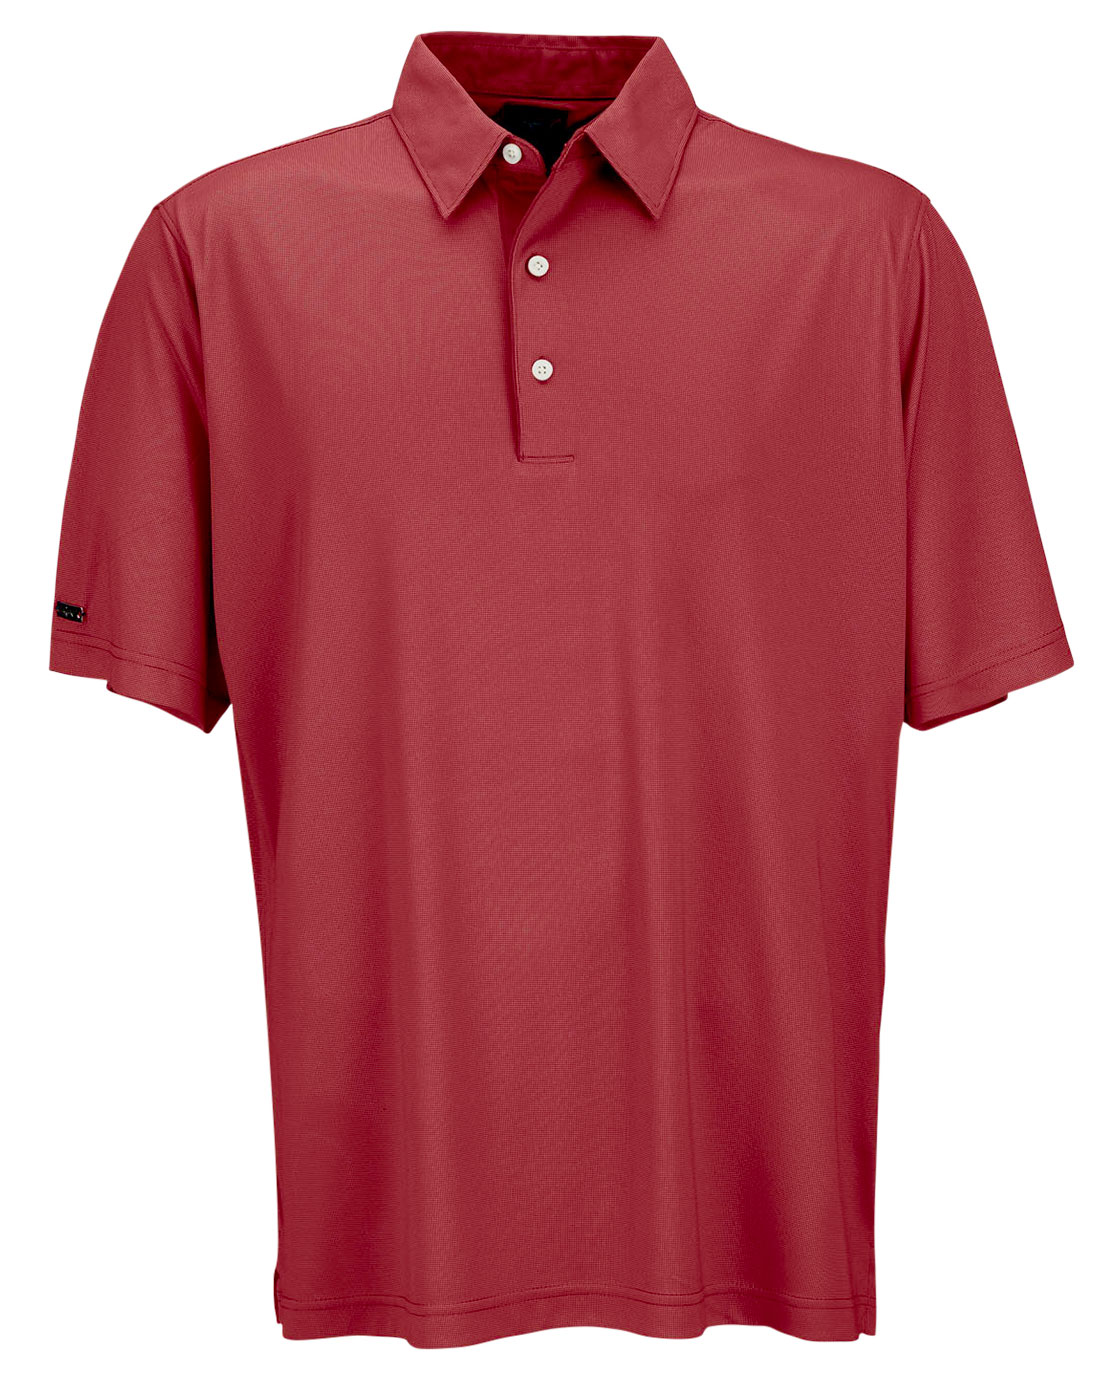 Greg Norman Mens Play Dry ML75 Nailhead Jacquard Polo